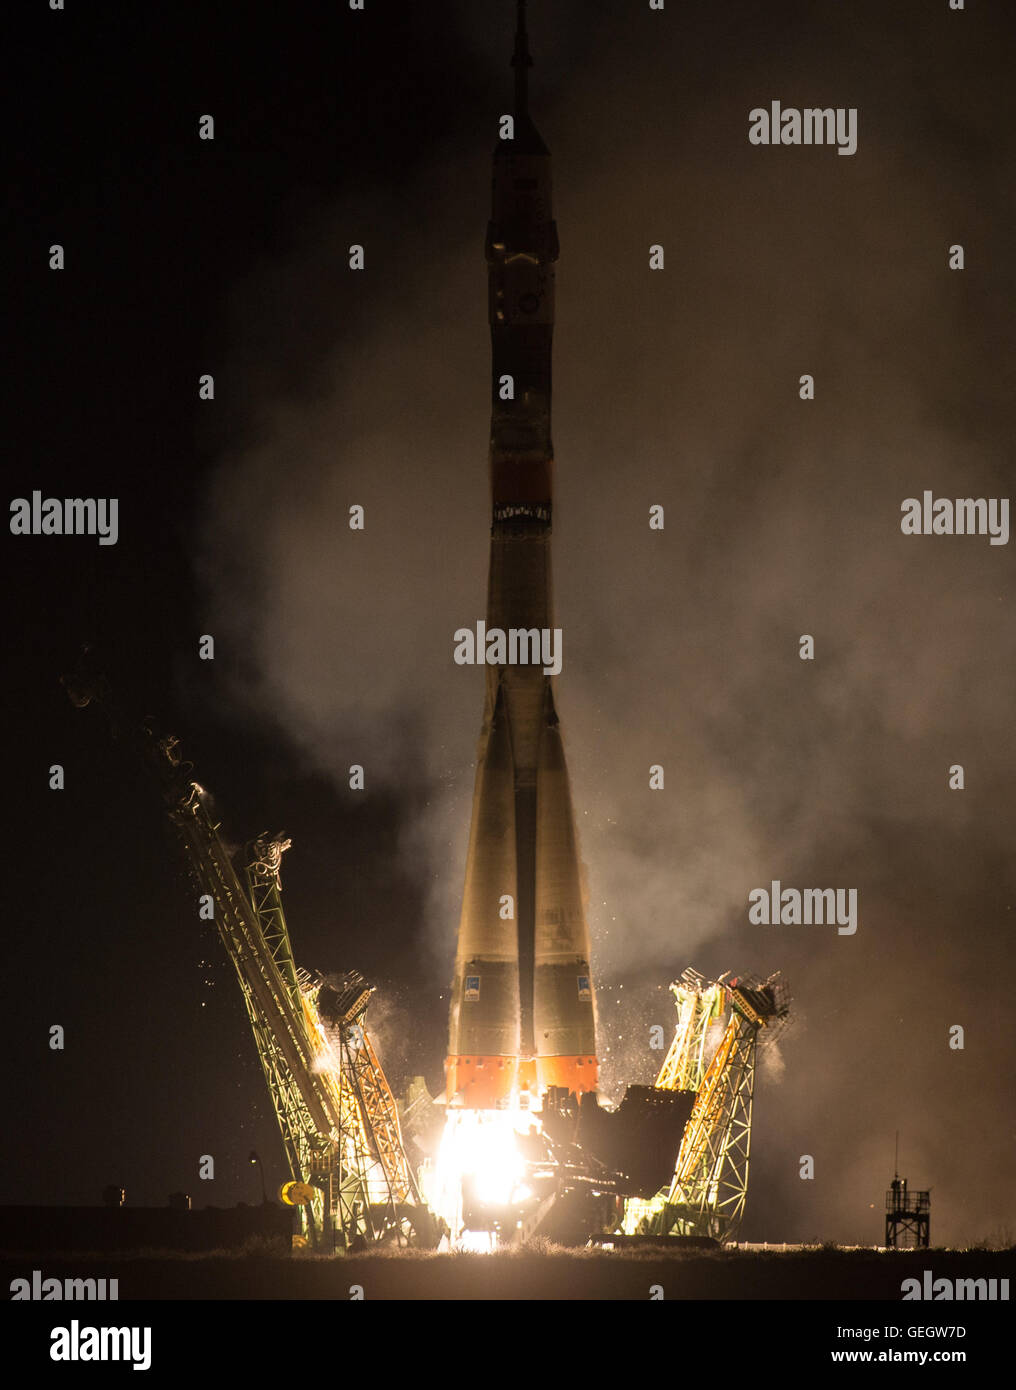 Expedition 47 Launch  03190002 - Stock Image